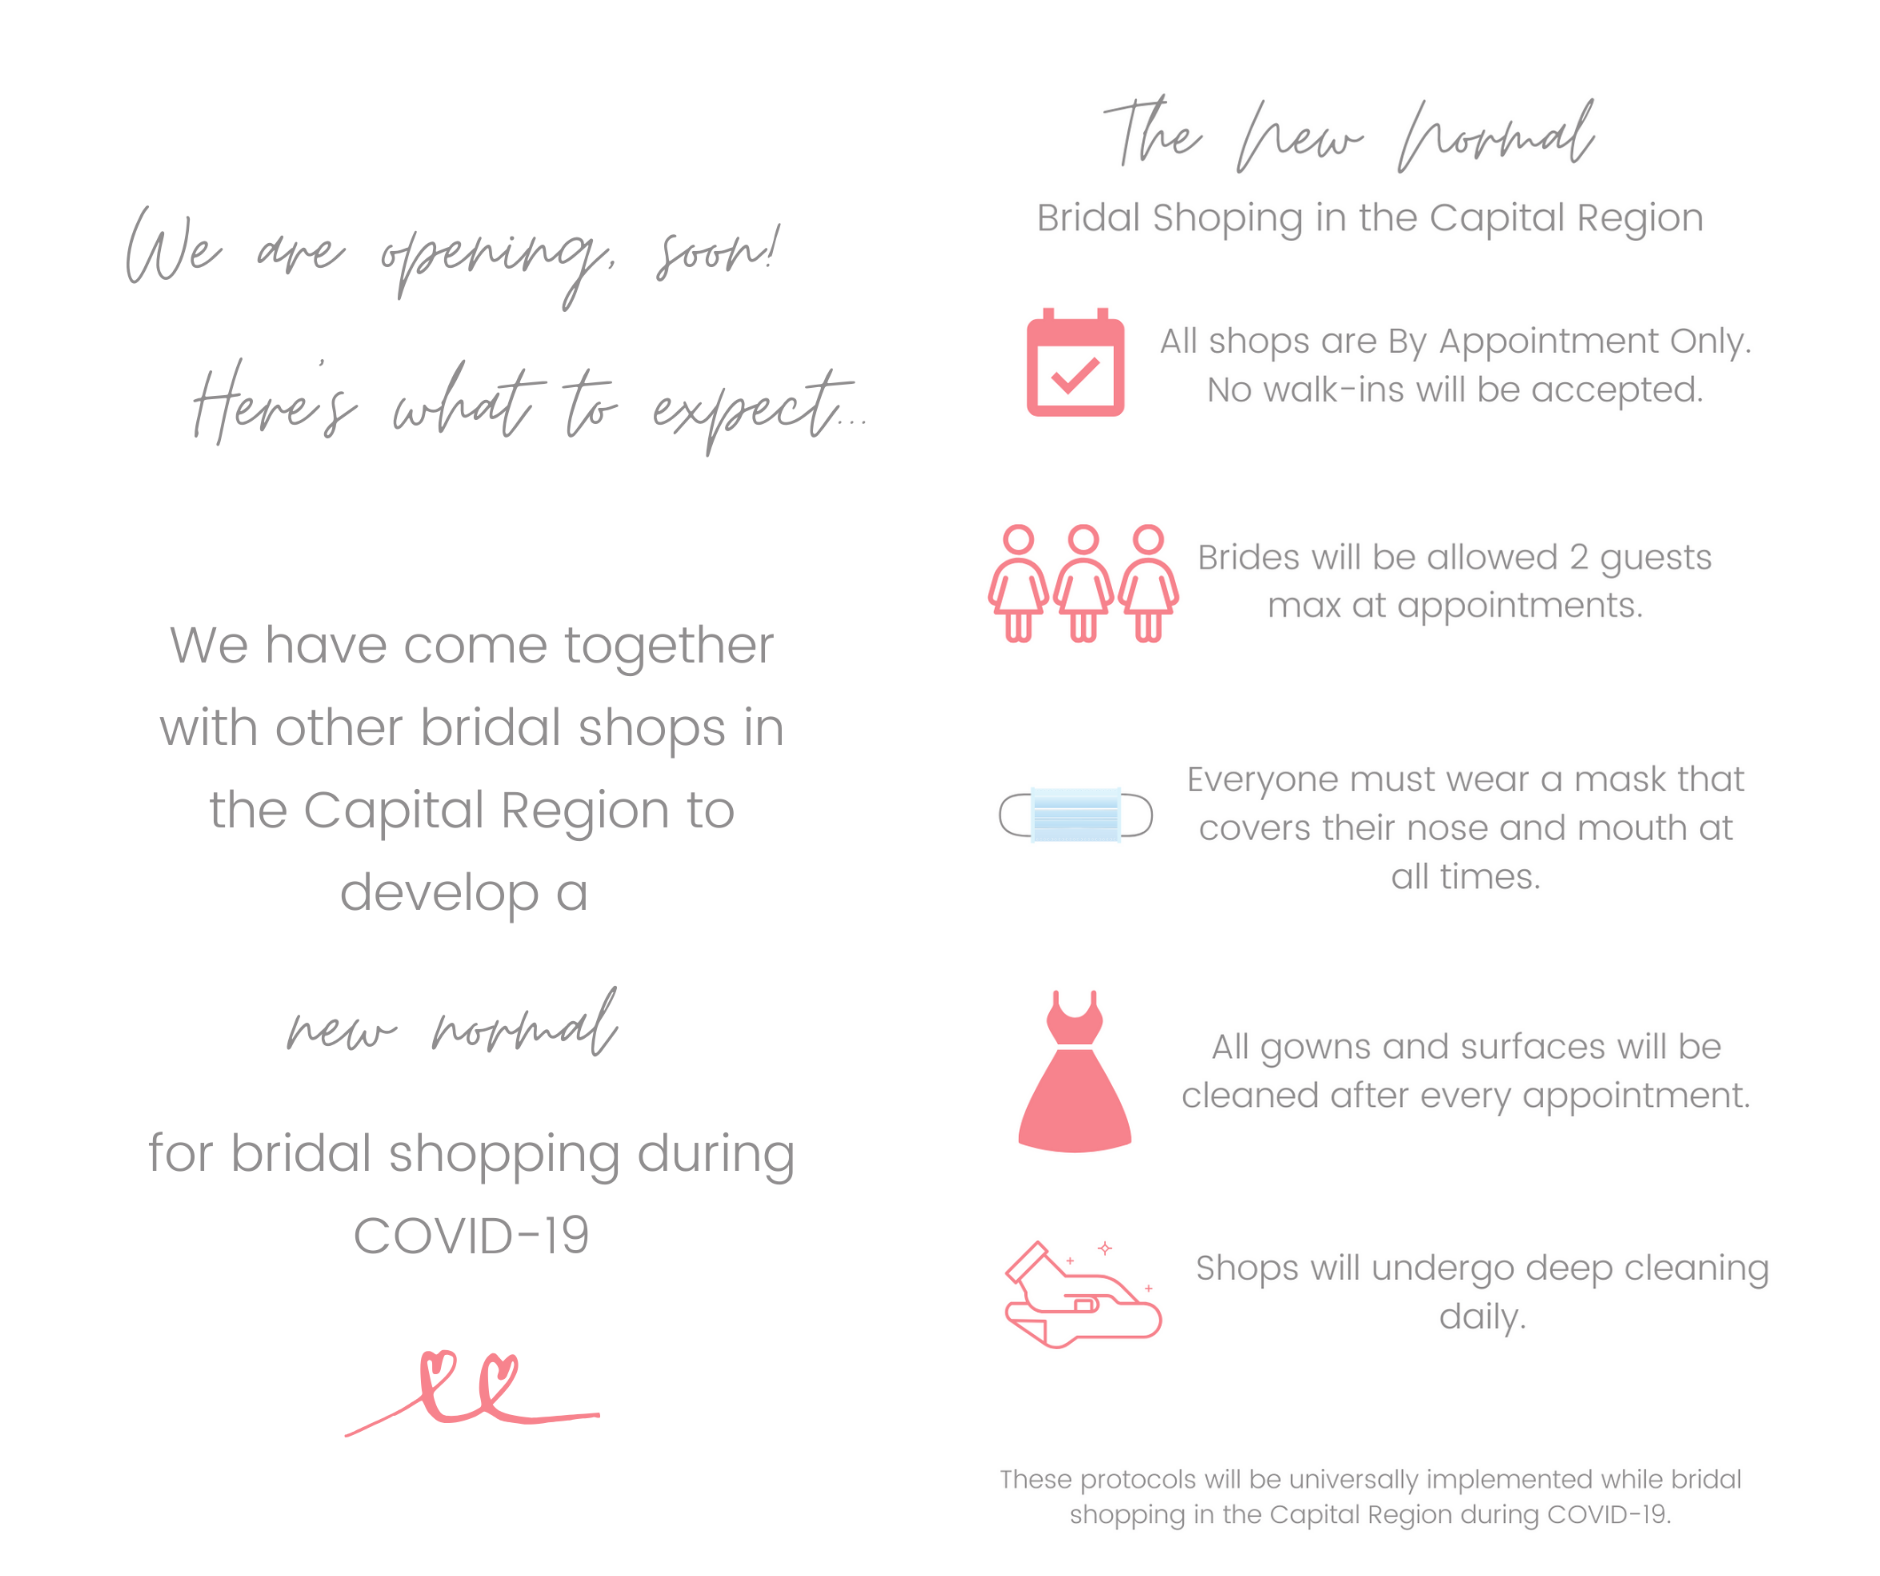 New COVID-19 Bridal Shopping Protocols